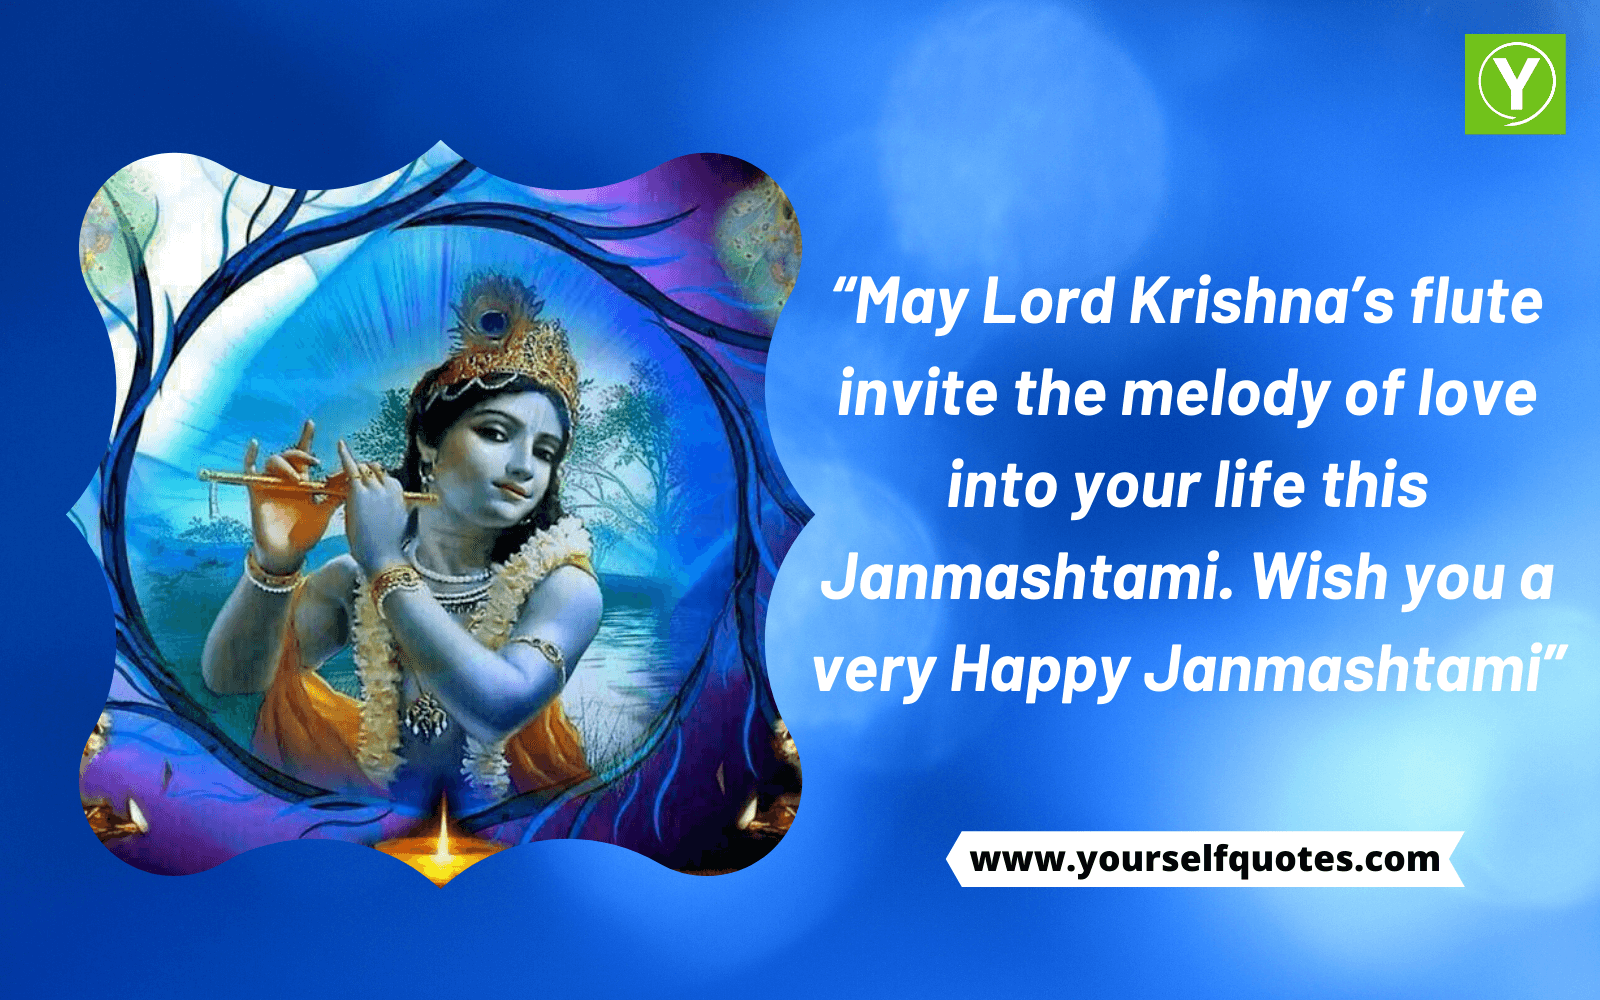 Wish You Happy Janmashtami